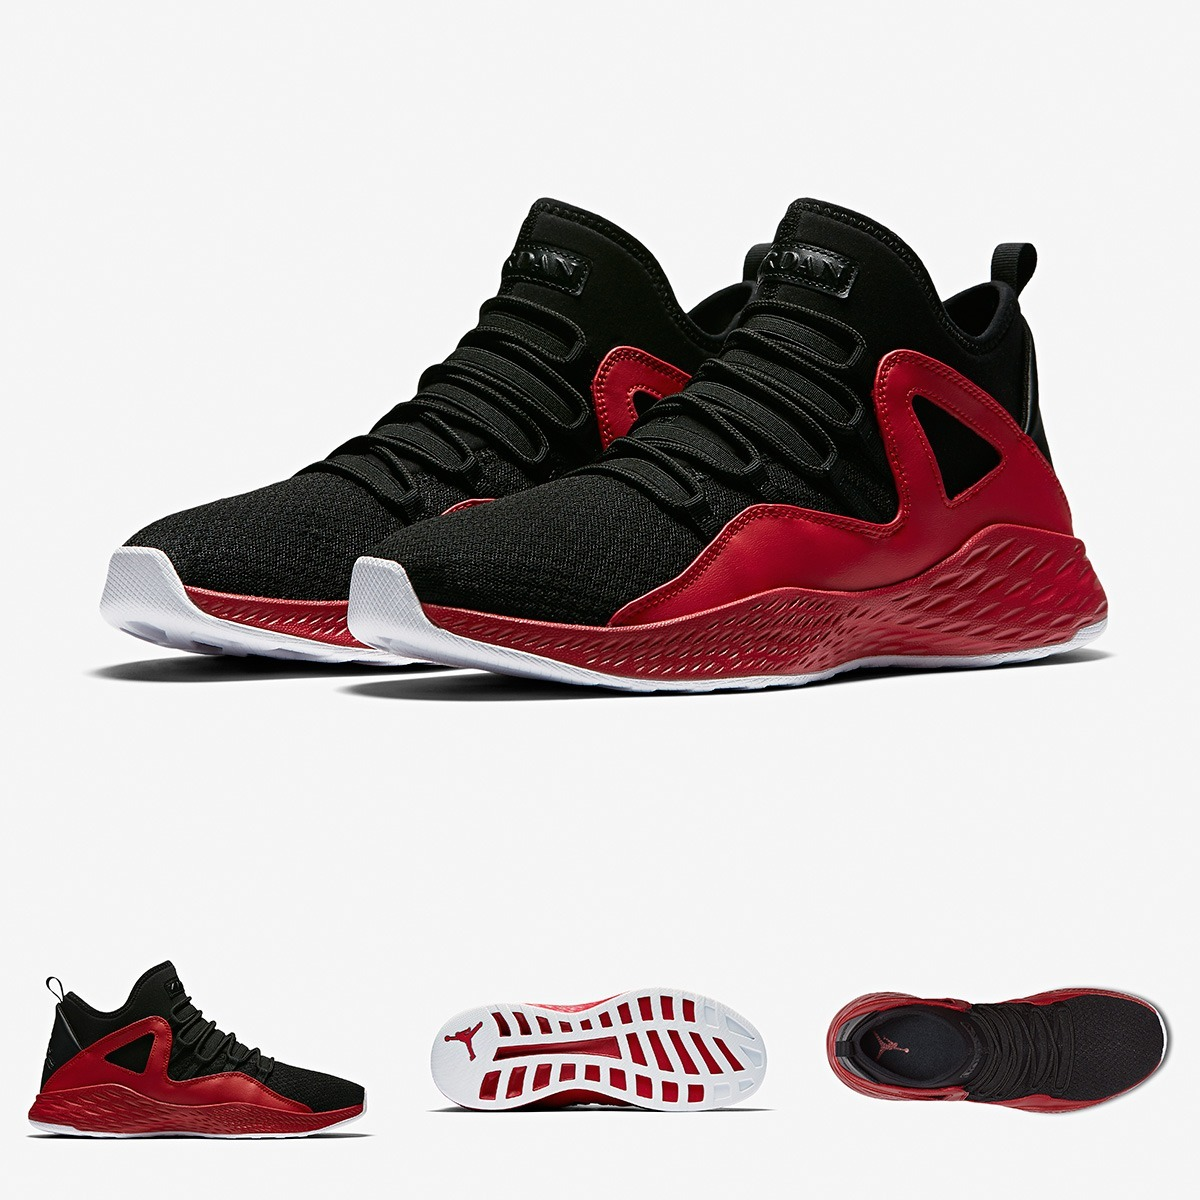 Formula Jordan 23Rising Retro Air Nike Black 2017 Flight yv8N0wOmnP